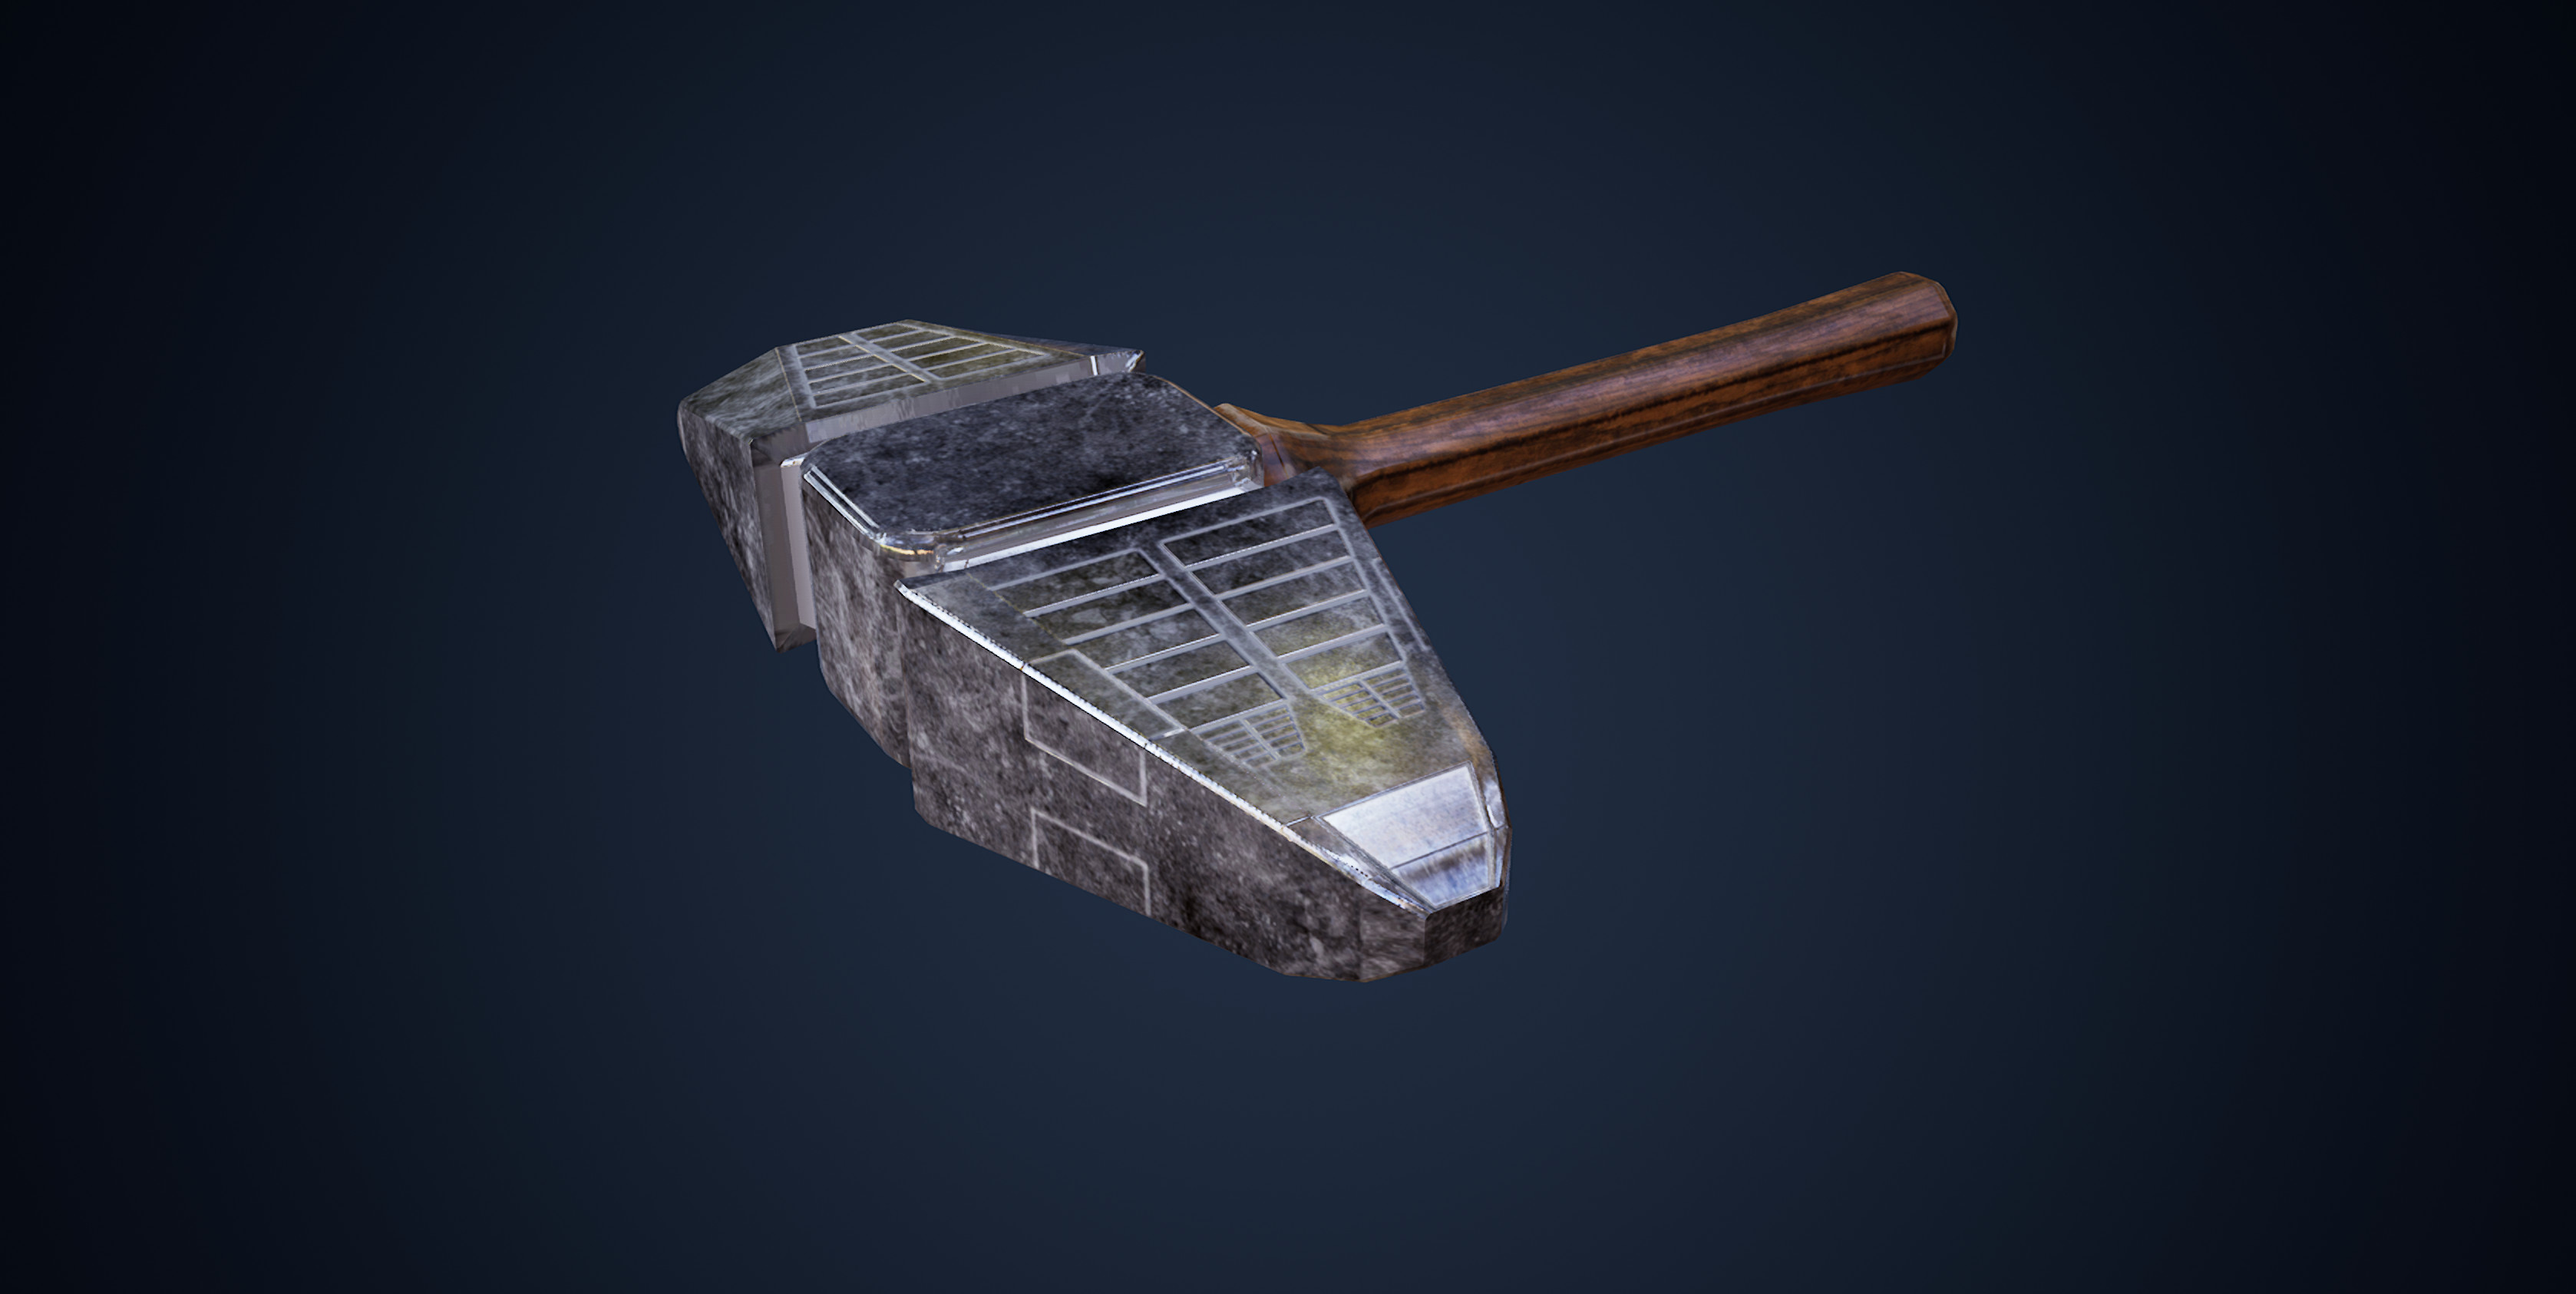 A Wood & Metal Mallet (Painted with Substance)